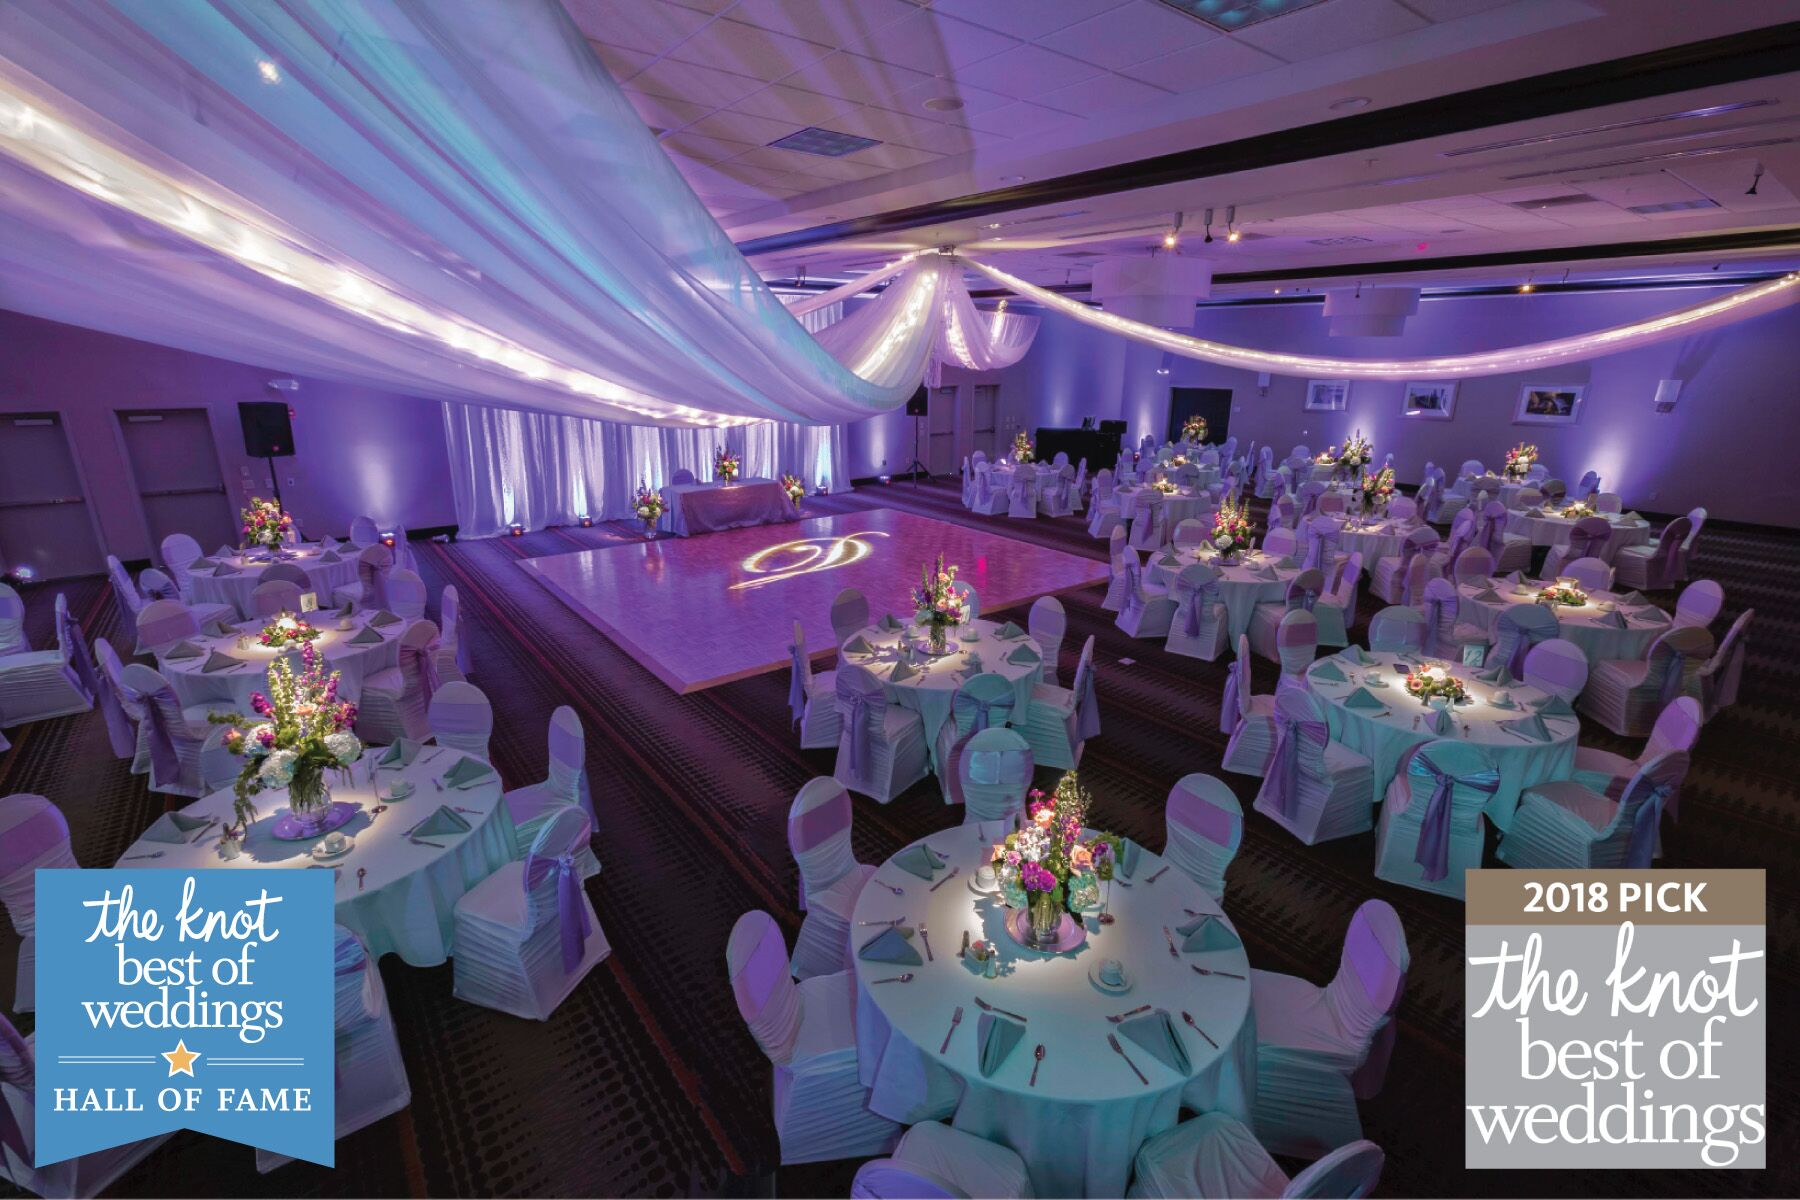 Wedding Invitations Dayton Ohio: DJ/MC, Lighting, Decor & Photo Booths